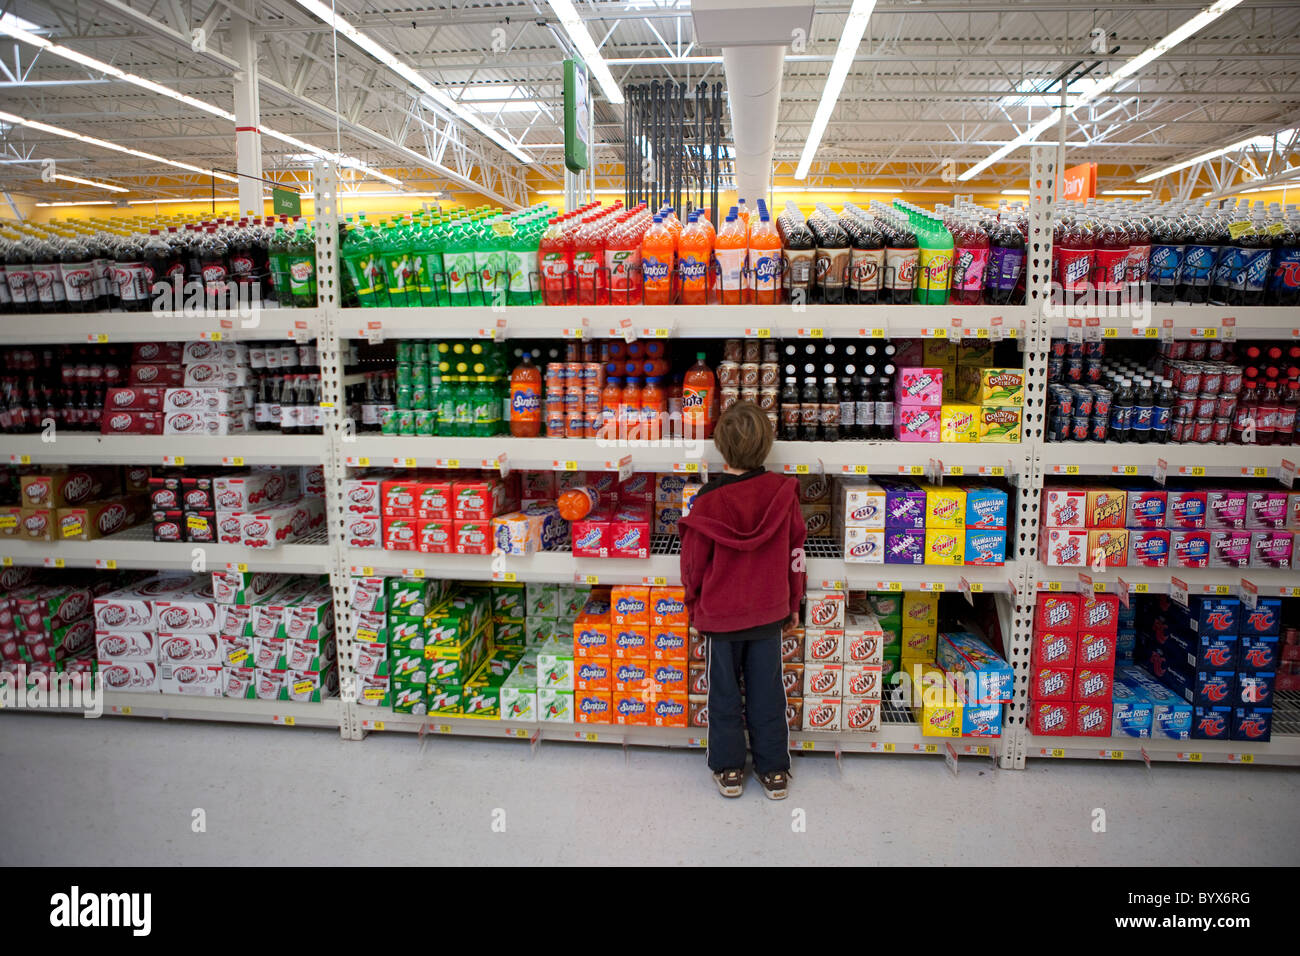 Seven Year Old Boy Stands In Front Of A Giant Aisle Of